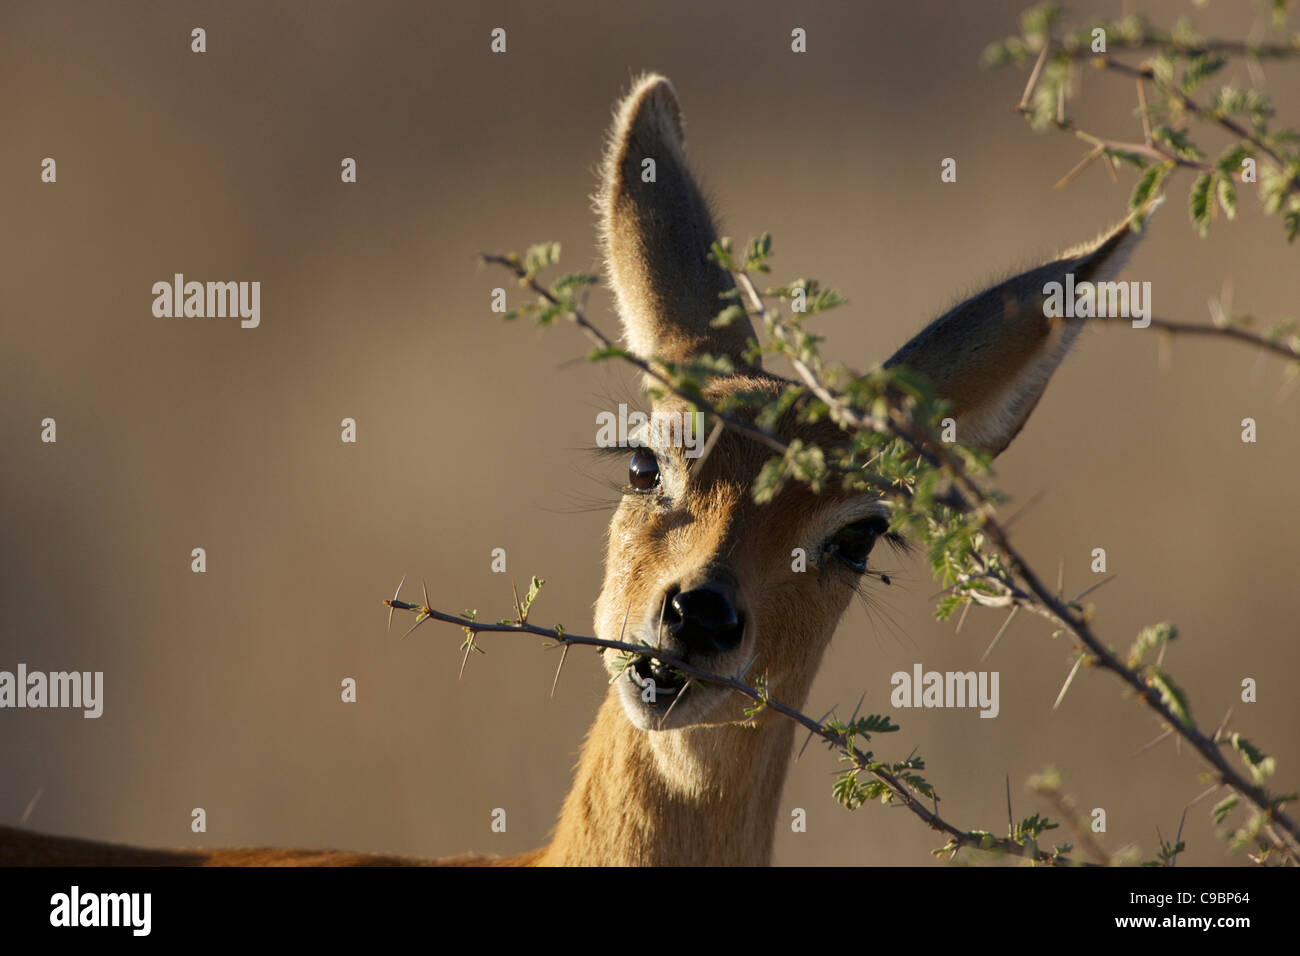 A Steenbok looking camera while it eats leaves off tree Kgalagadi Transfrontier Park Northern Cape Province South - Stock Image